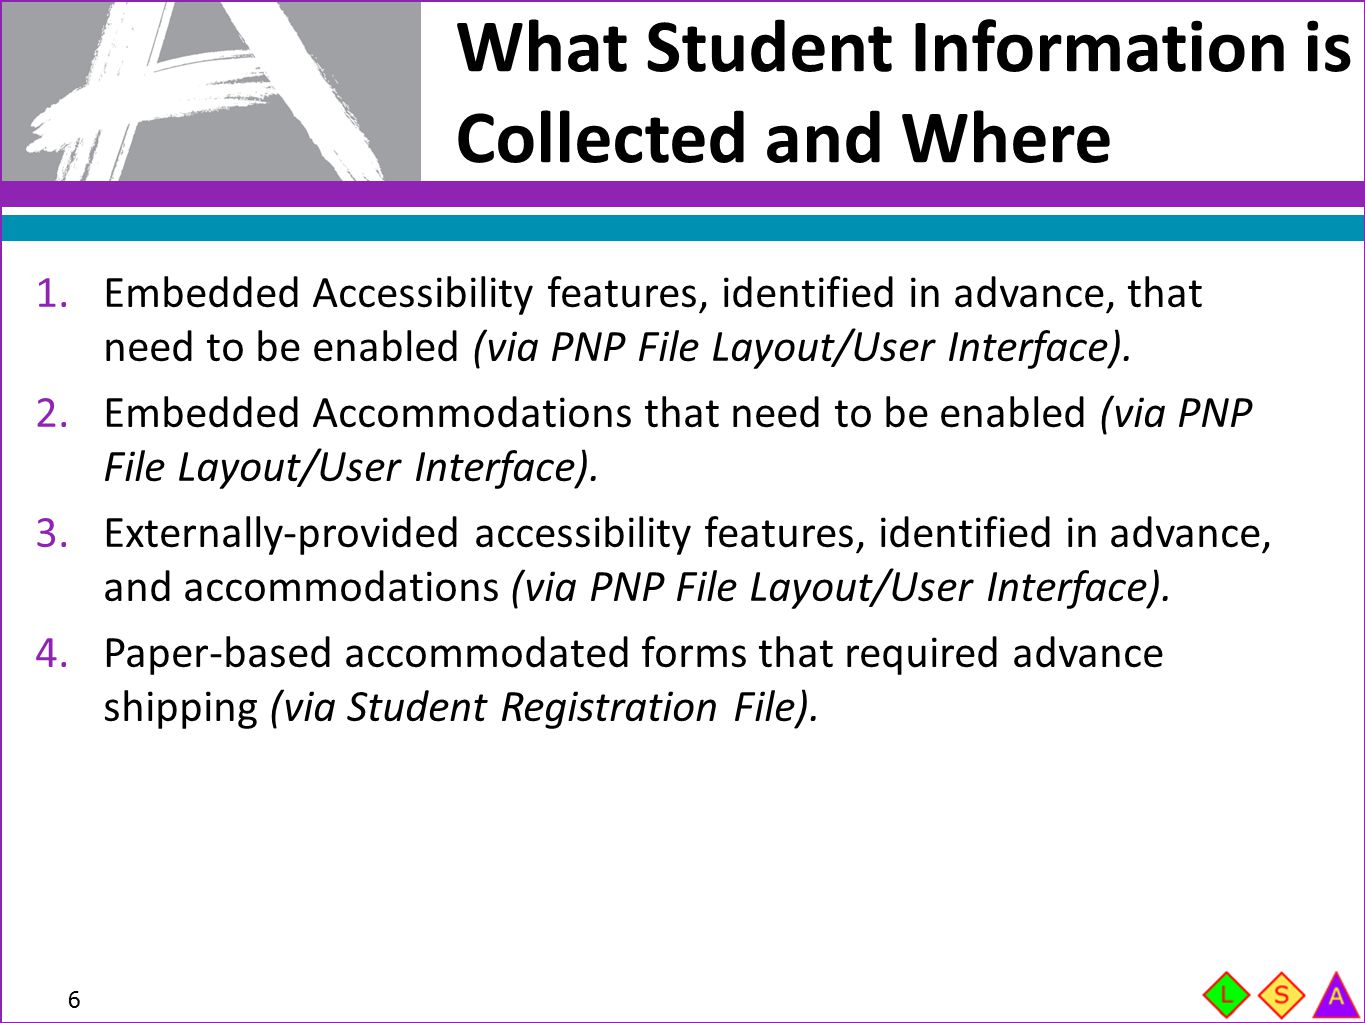 What Student Information is Collected and Where